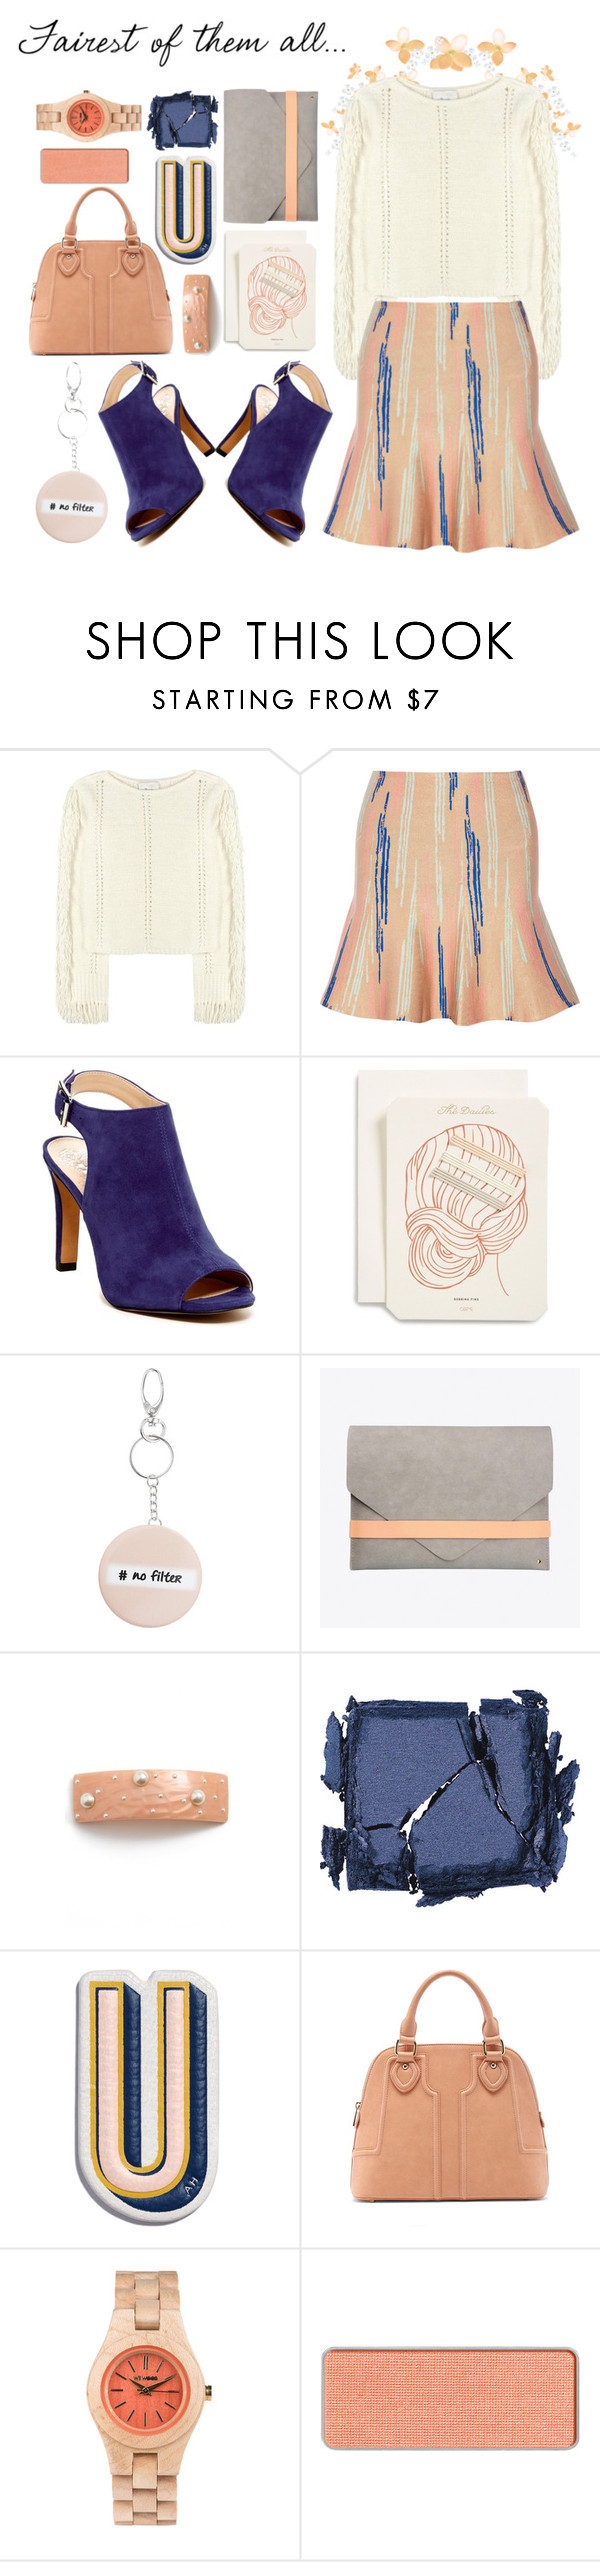 """""""Tell me."""" by vigilexi ❤ liked on Polyvore featuring 3.1 Phillip Lim, Issa, Vince Camuto, Odeme, Topshop, Kami, L. Erickson, Surratt, Anya Hindmarch and Sole Society"""